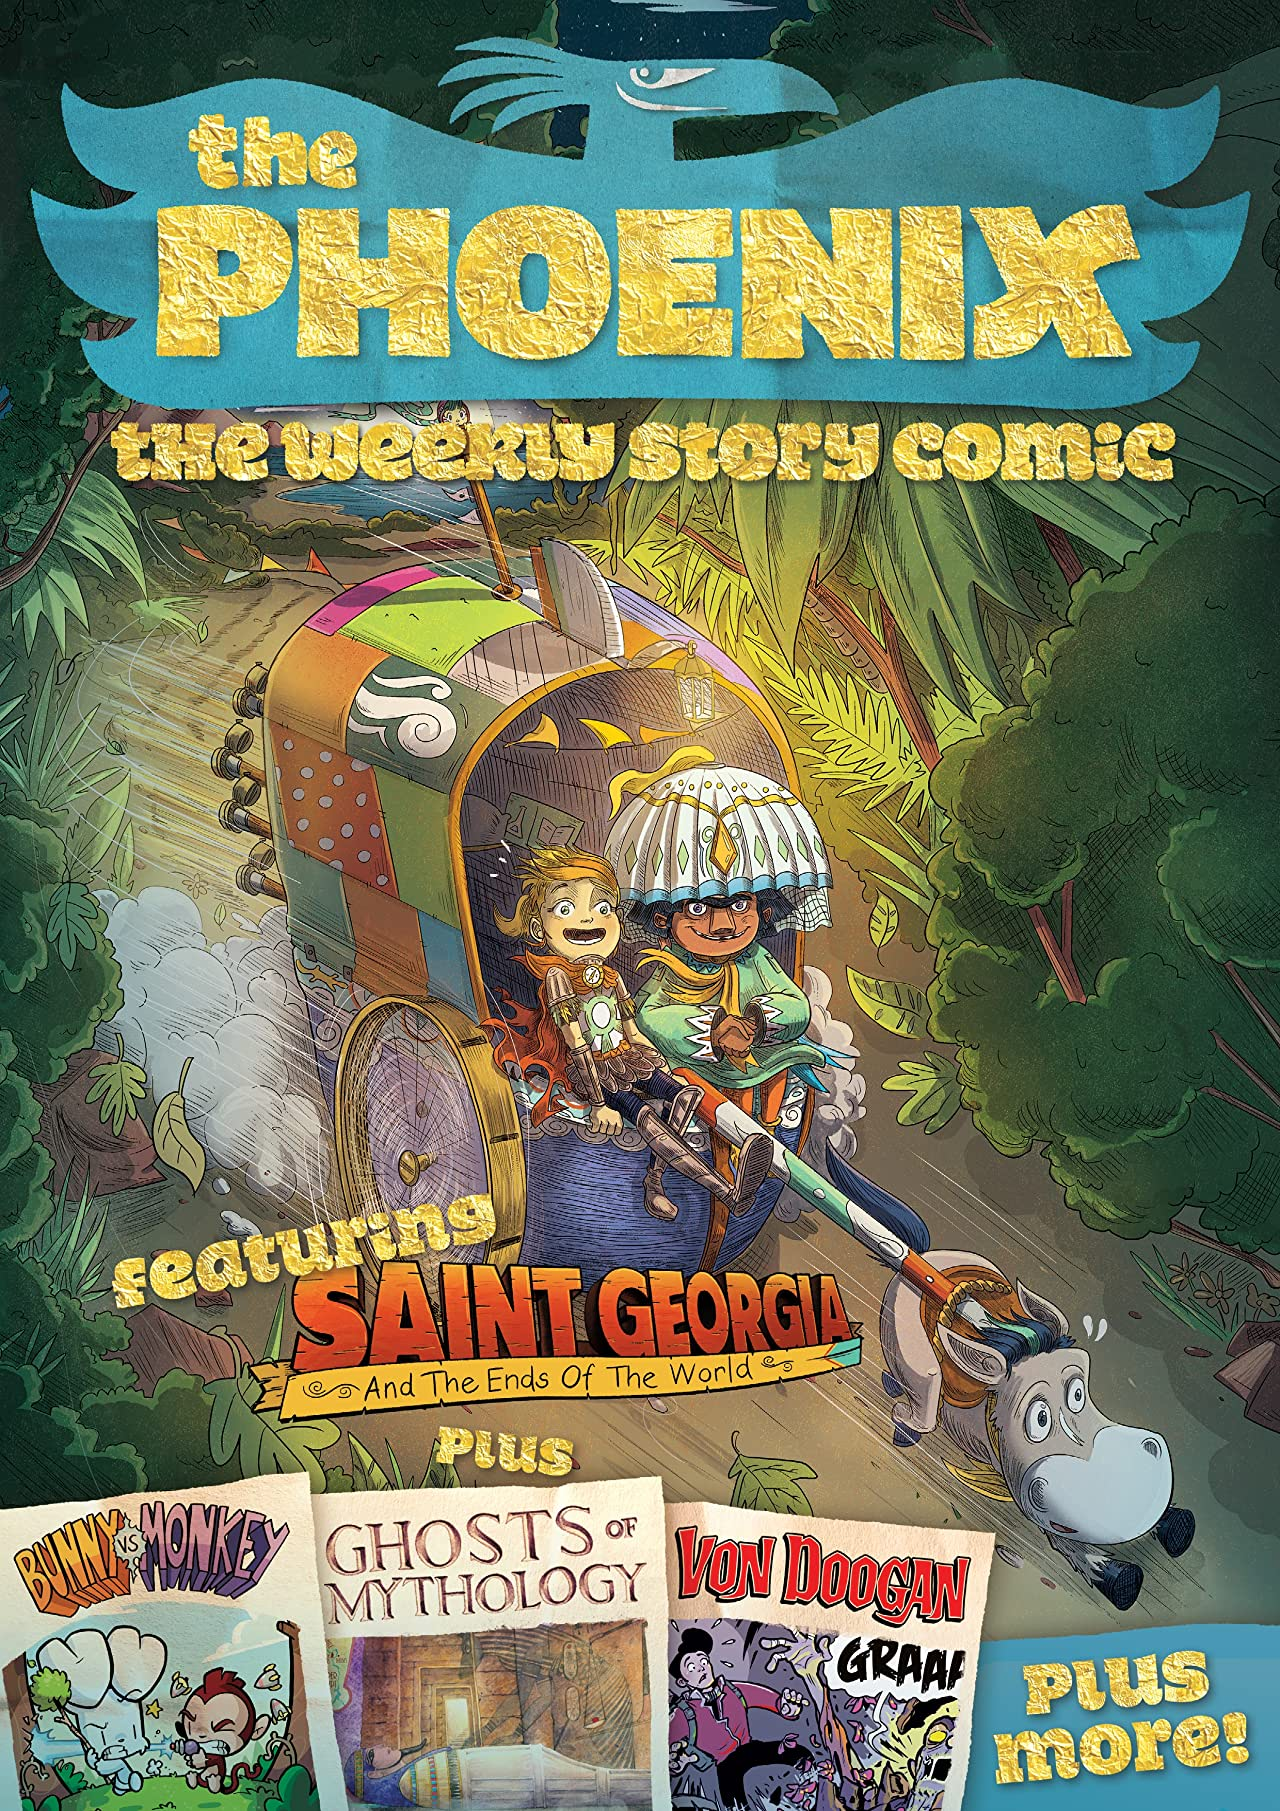 The Phoenix #216: The Weekly Story Comic